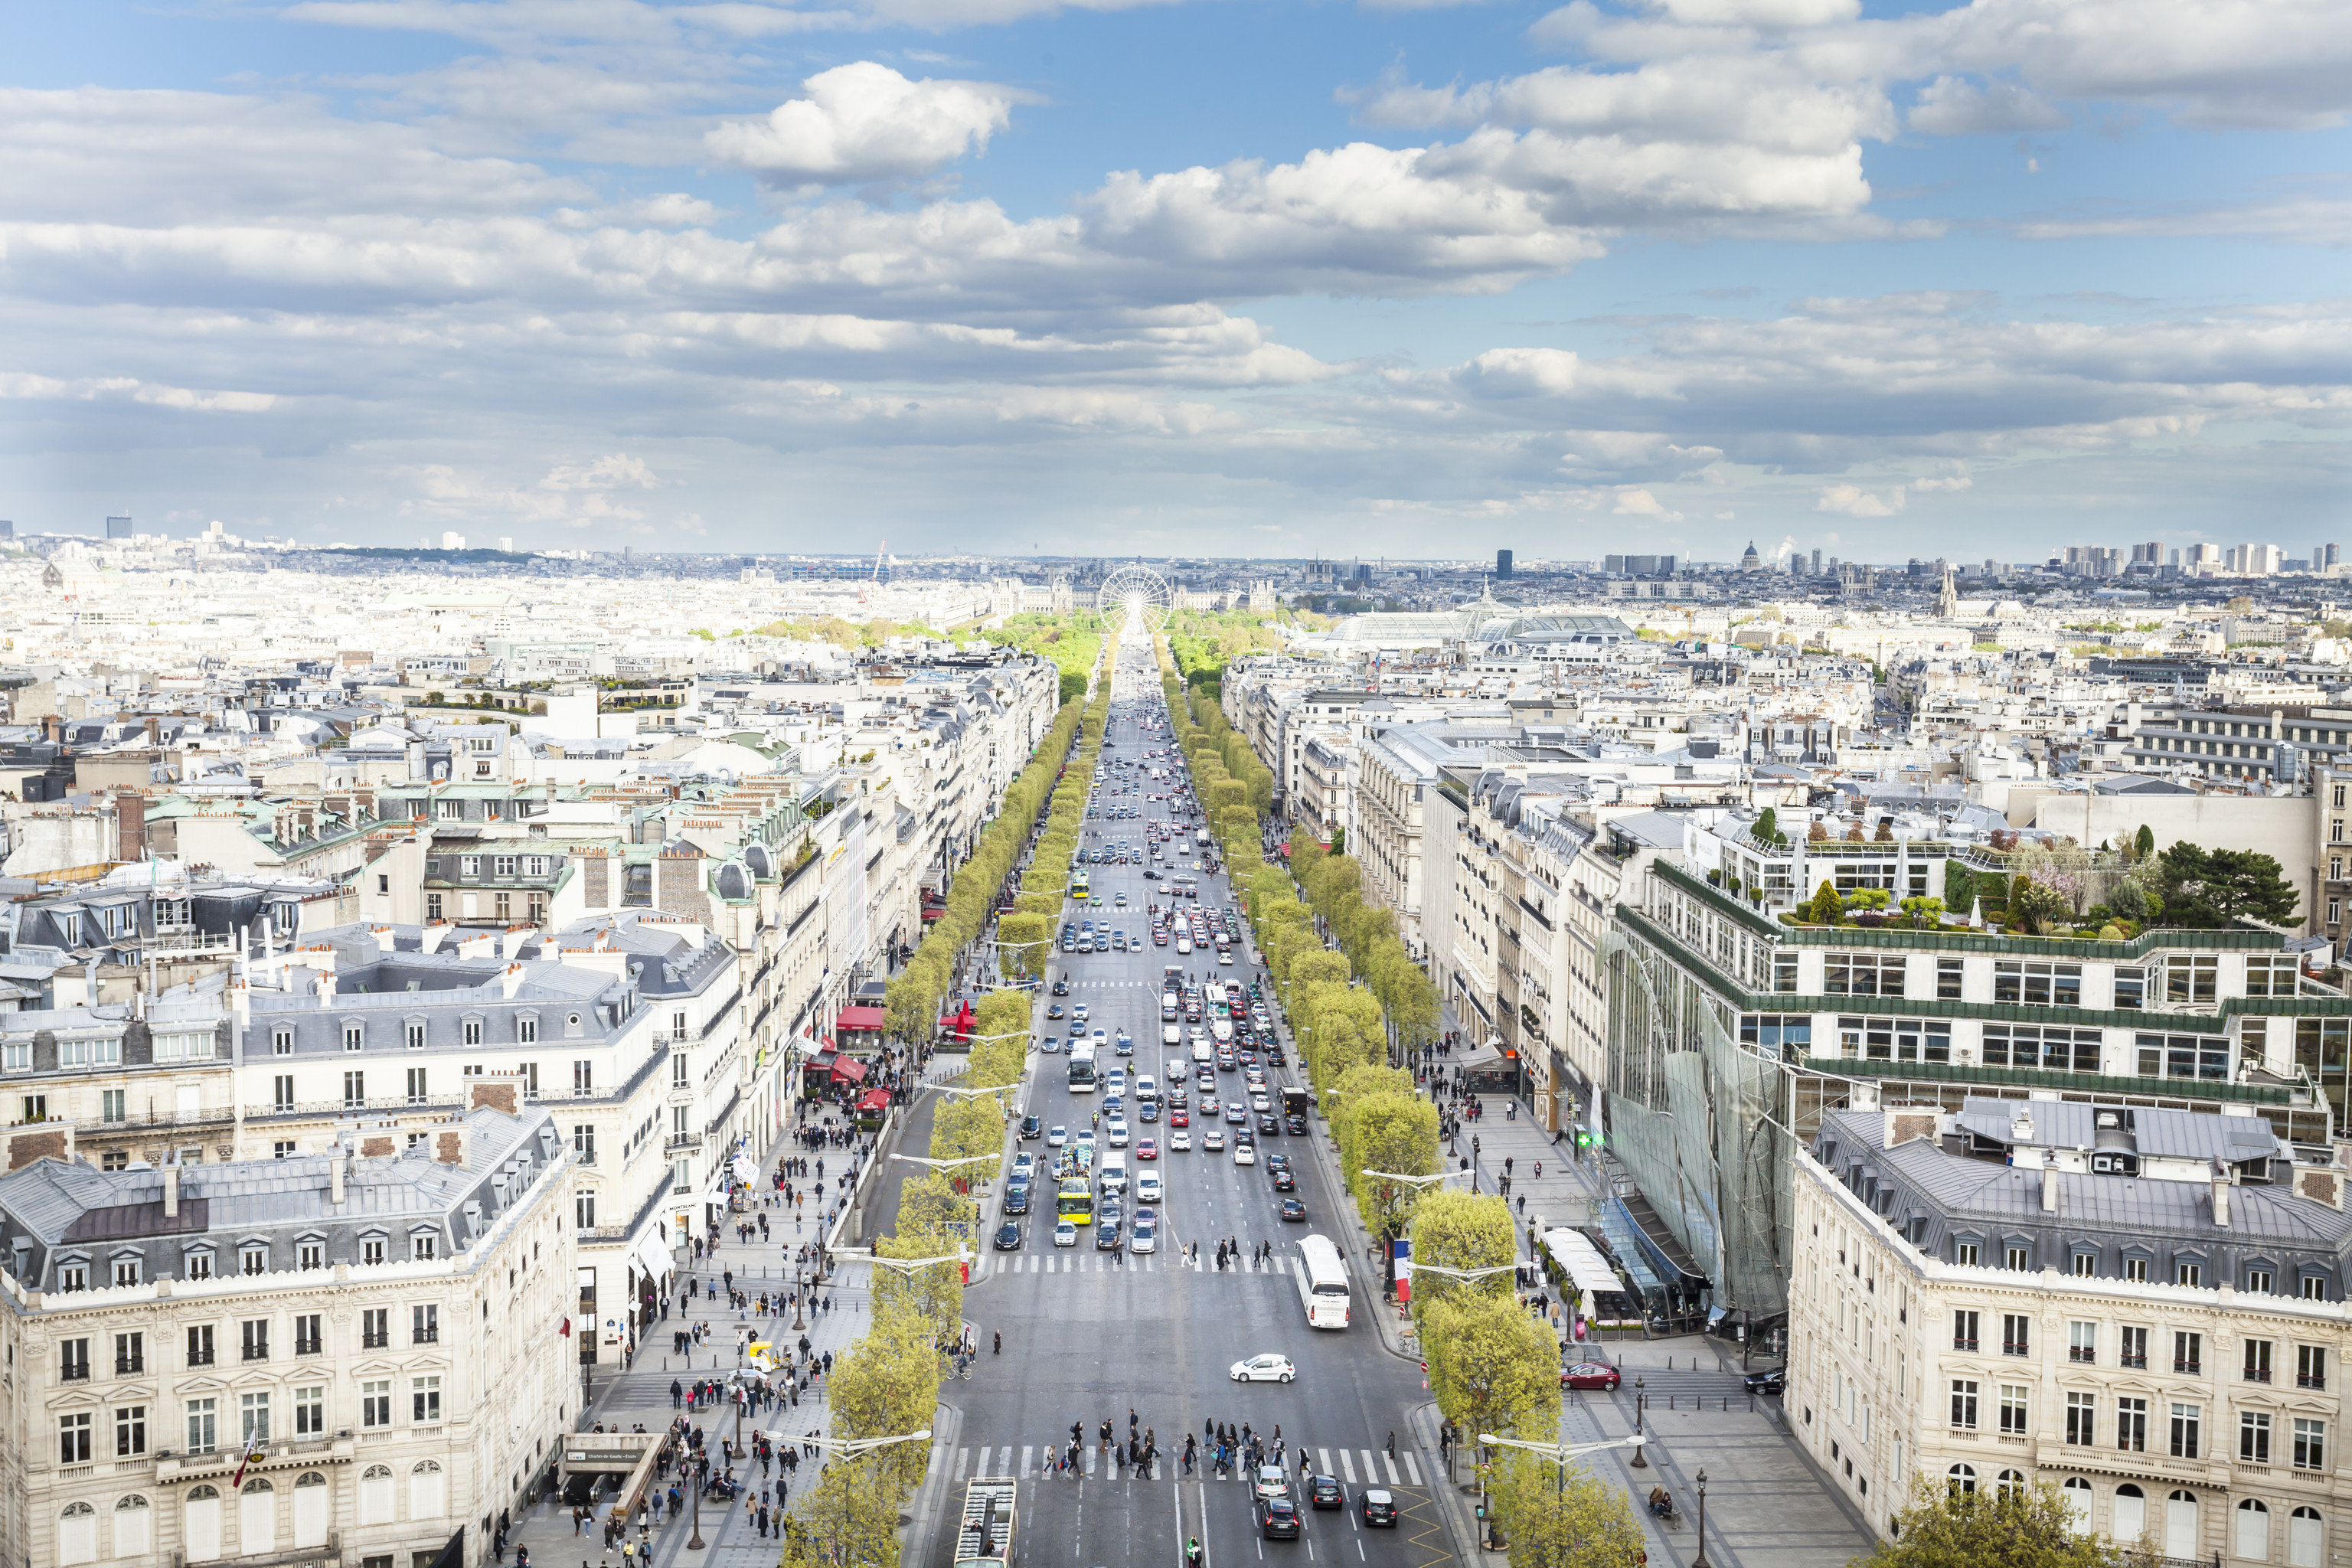 France Hotels Jetsetter Guides Paris Solo Travel Trip Ideas sky aerial photography transport outdoor cityscape photography City urban area bird's eye view human settlement residential area River stadium waterway panorama skyline